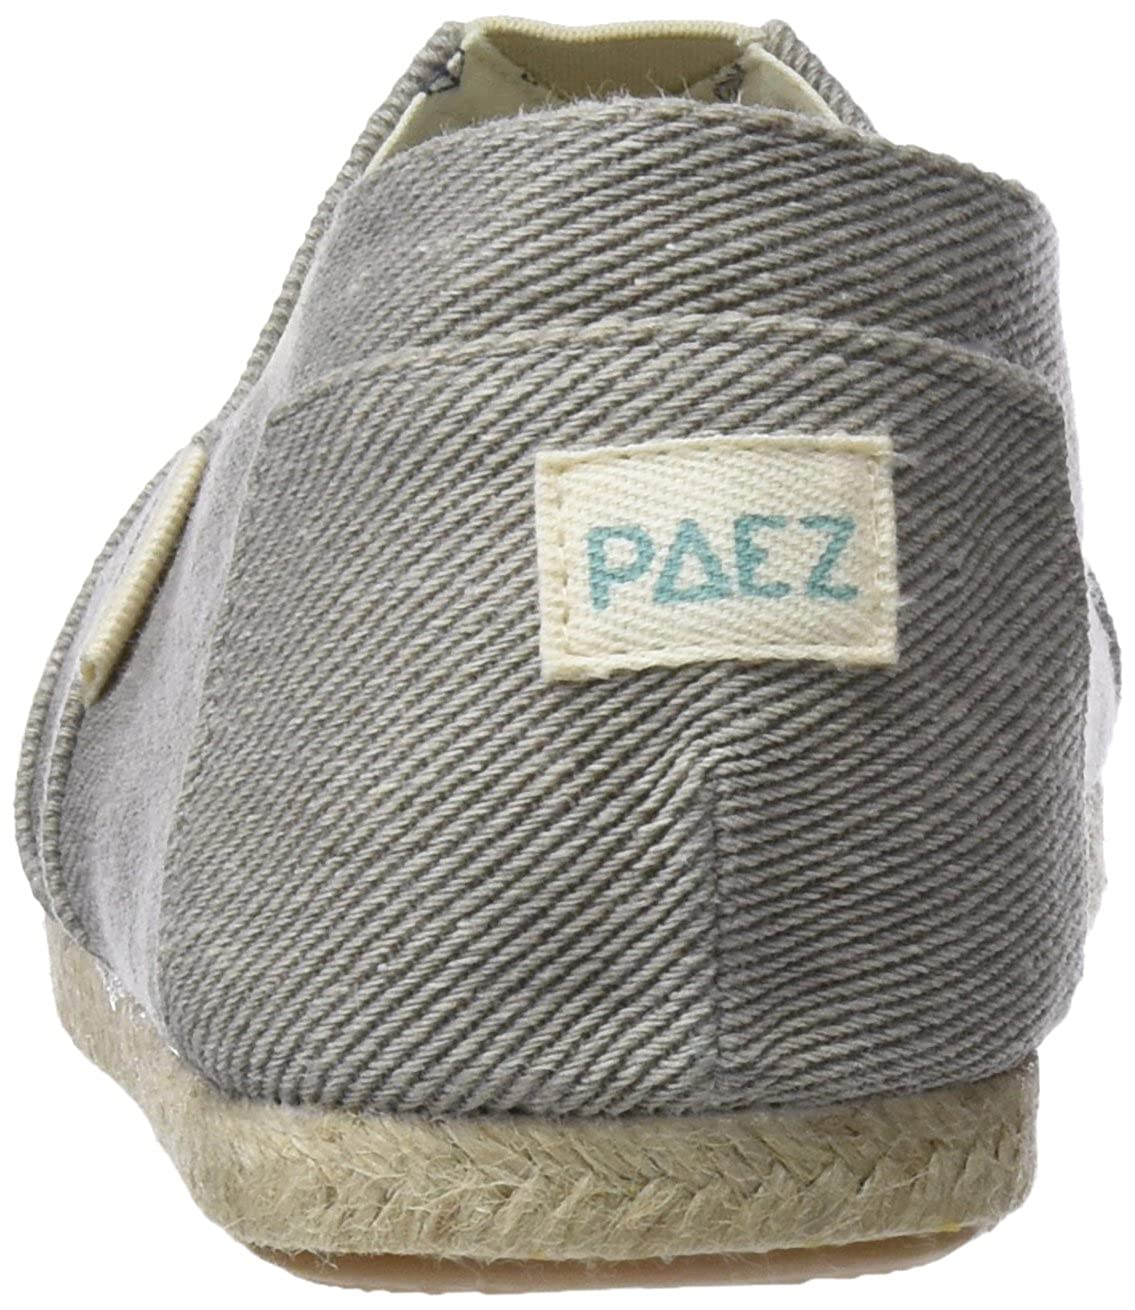 Paez Original-Essentials Grey, Alpargatas para Hombre: Amazon.es: Zapatos y complementos